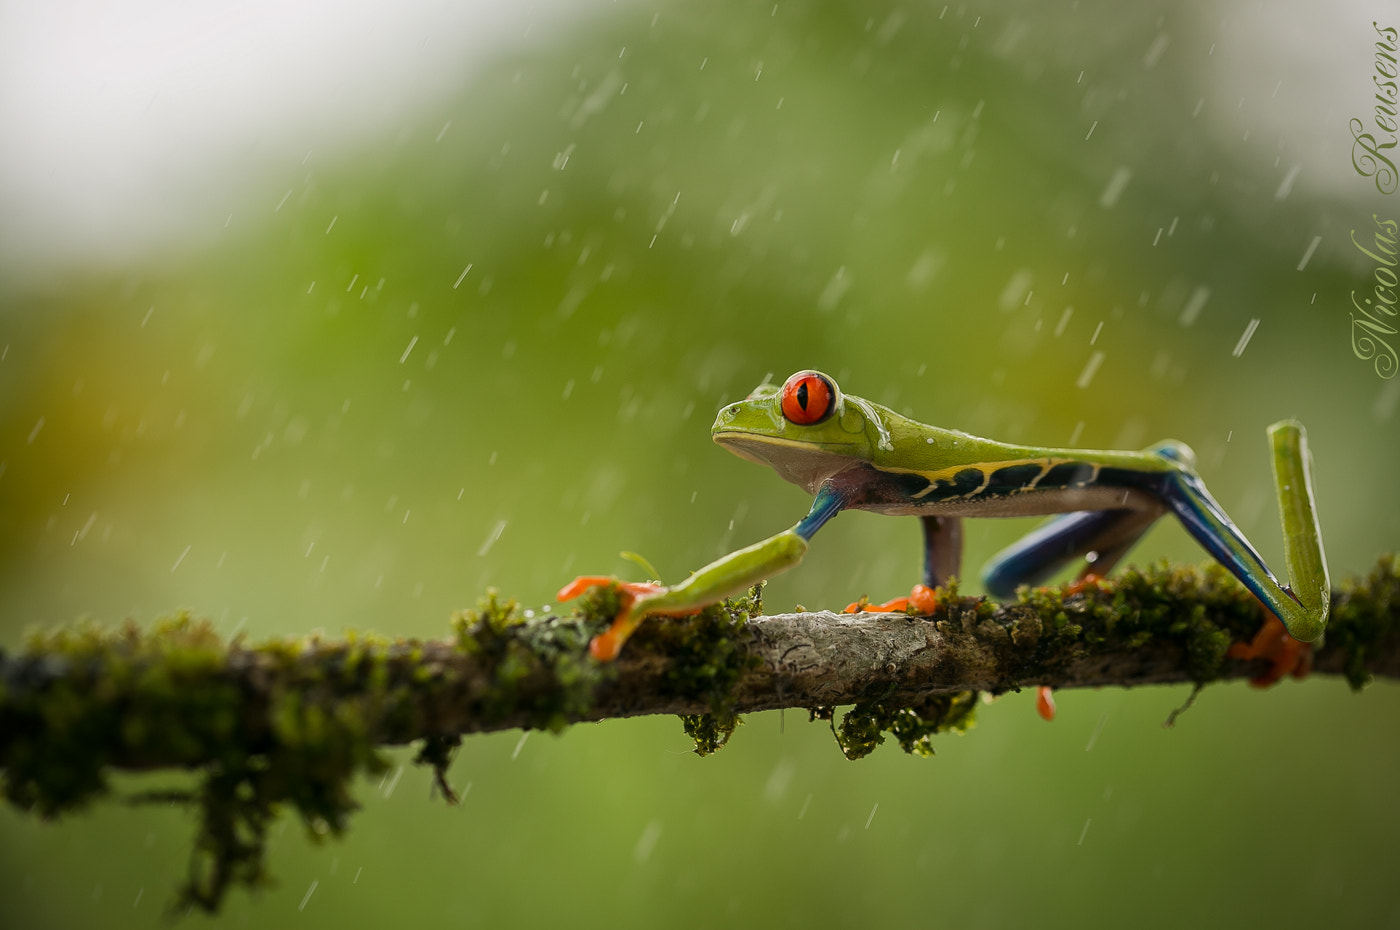 Photograph Froggy rainy day by Nicolas Reusens on 500px